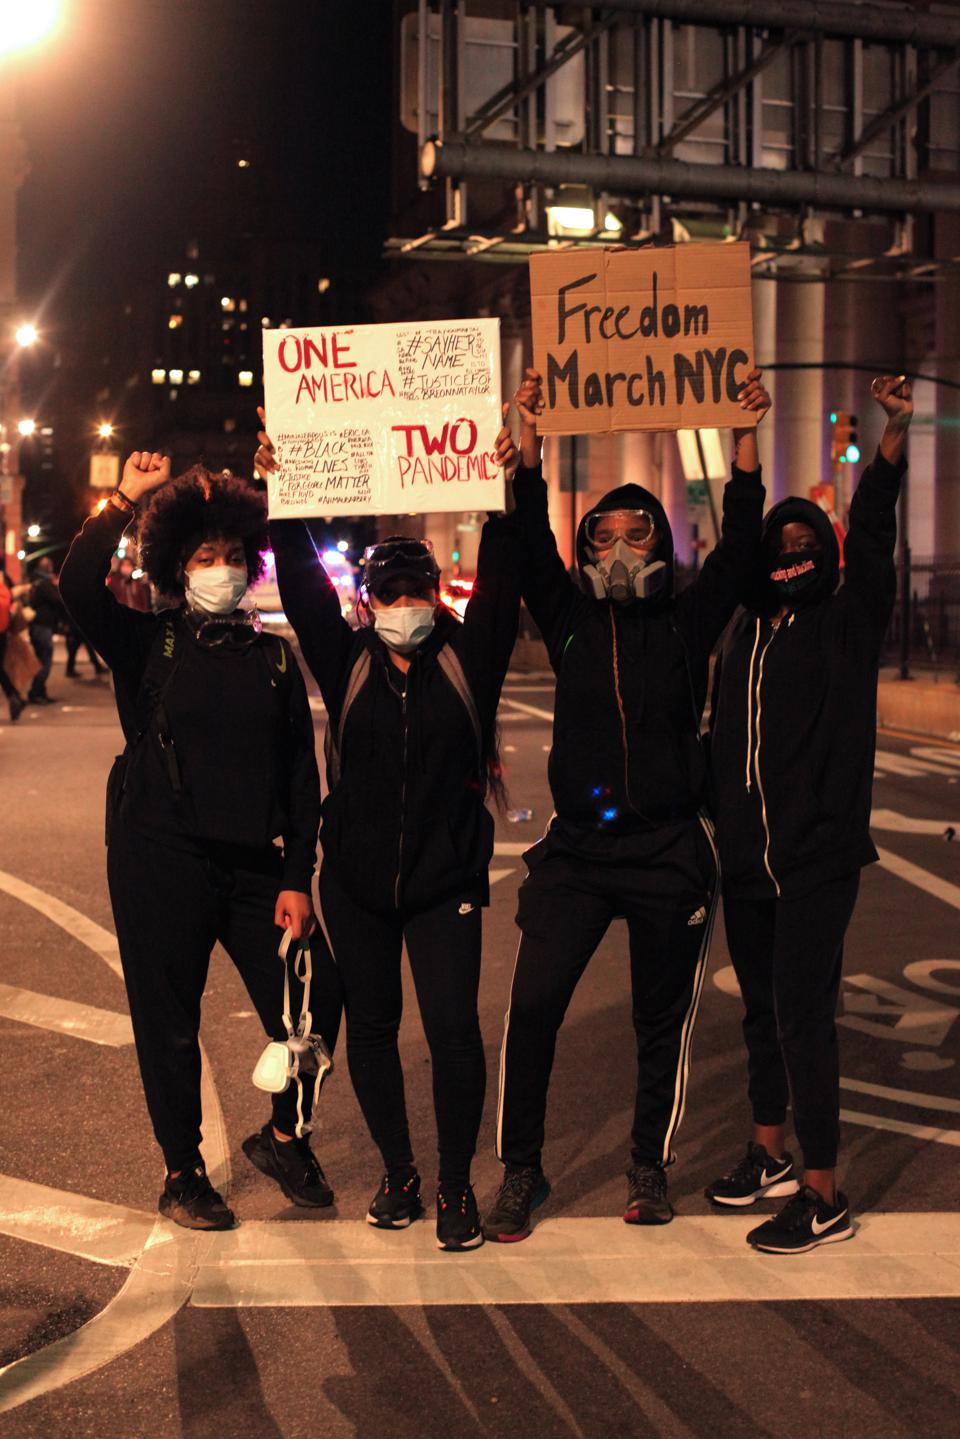 Protesters at Freedom March NYC hold sings in the air and wear masks at night.